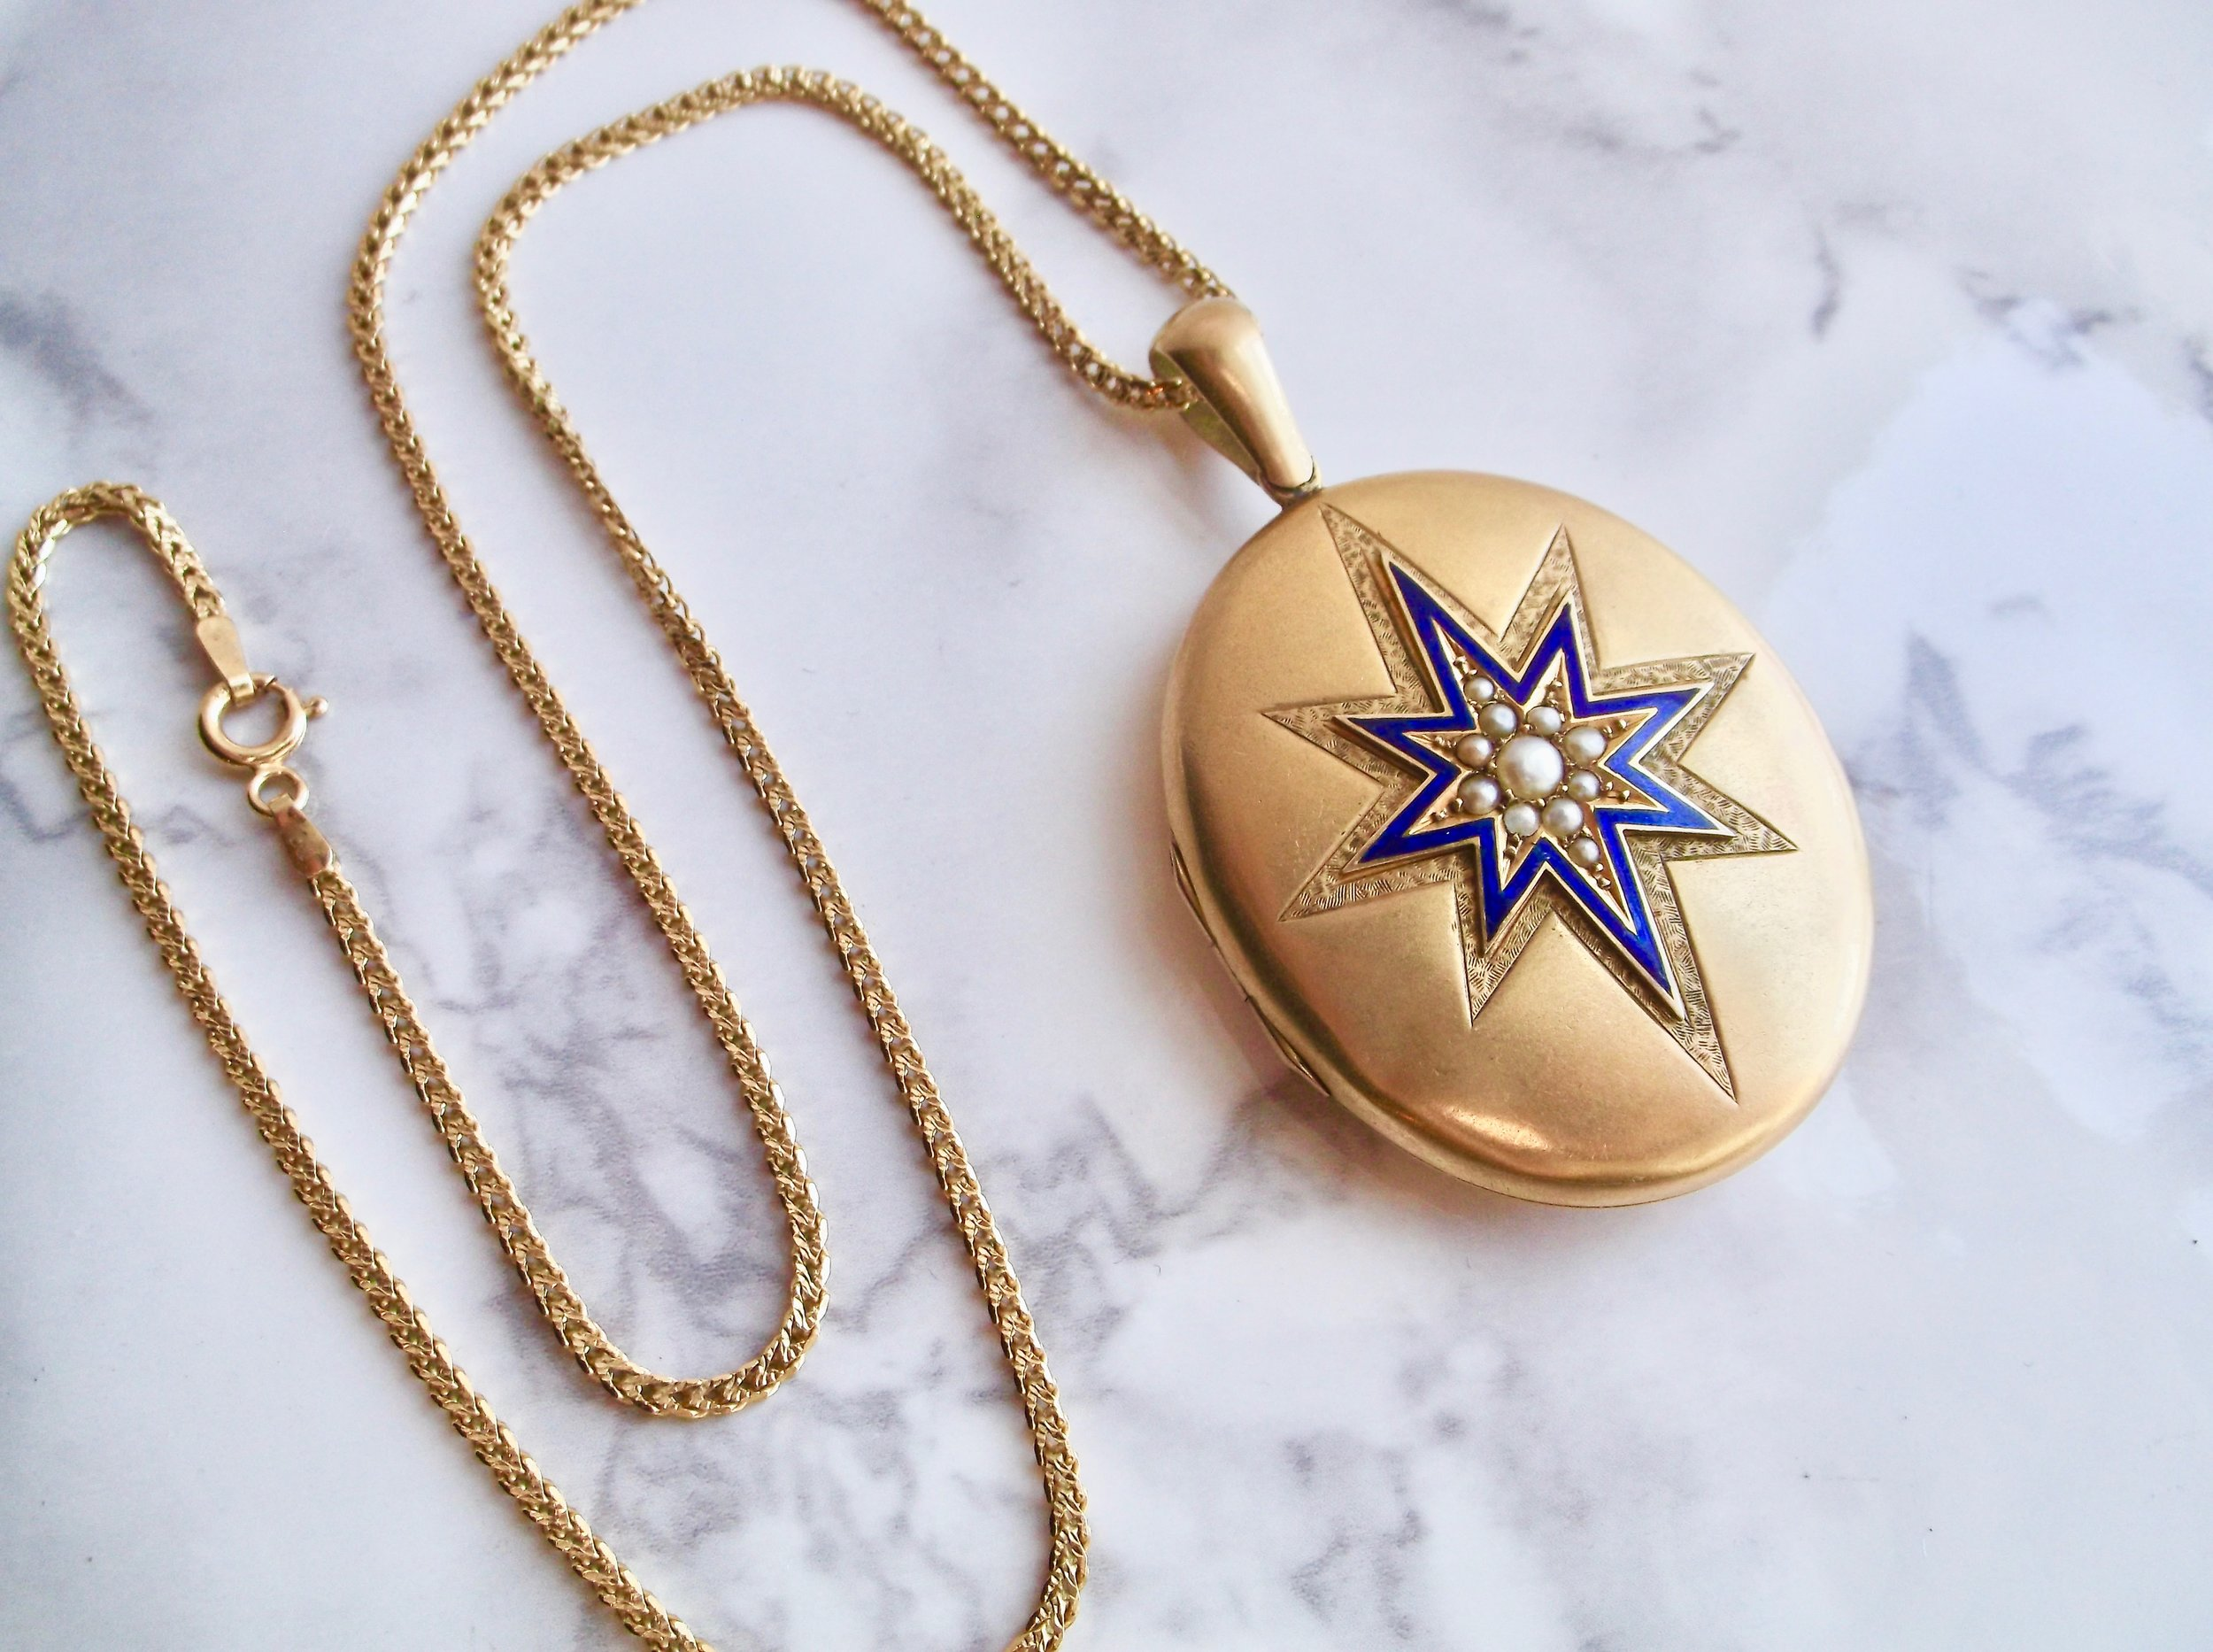 Stellar Victorian era locket featuring blue enamel, seed pearl and engraving details.  The perfect piece to keep your loved ones close to your heart! Shop this lovely necklace  HERE .